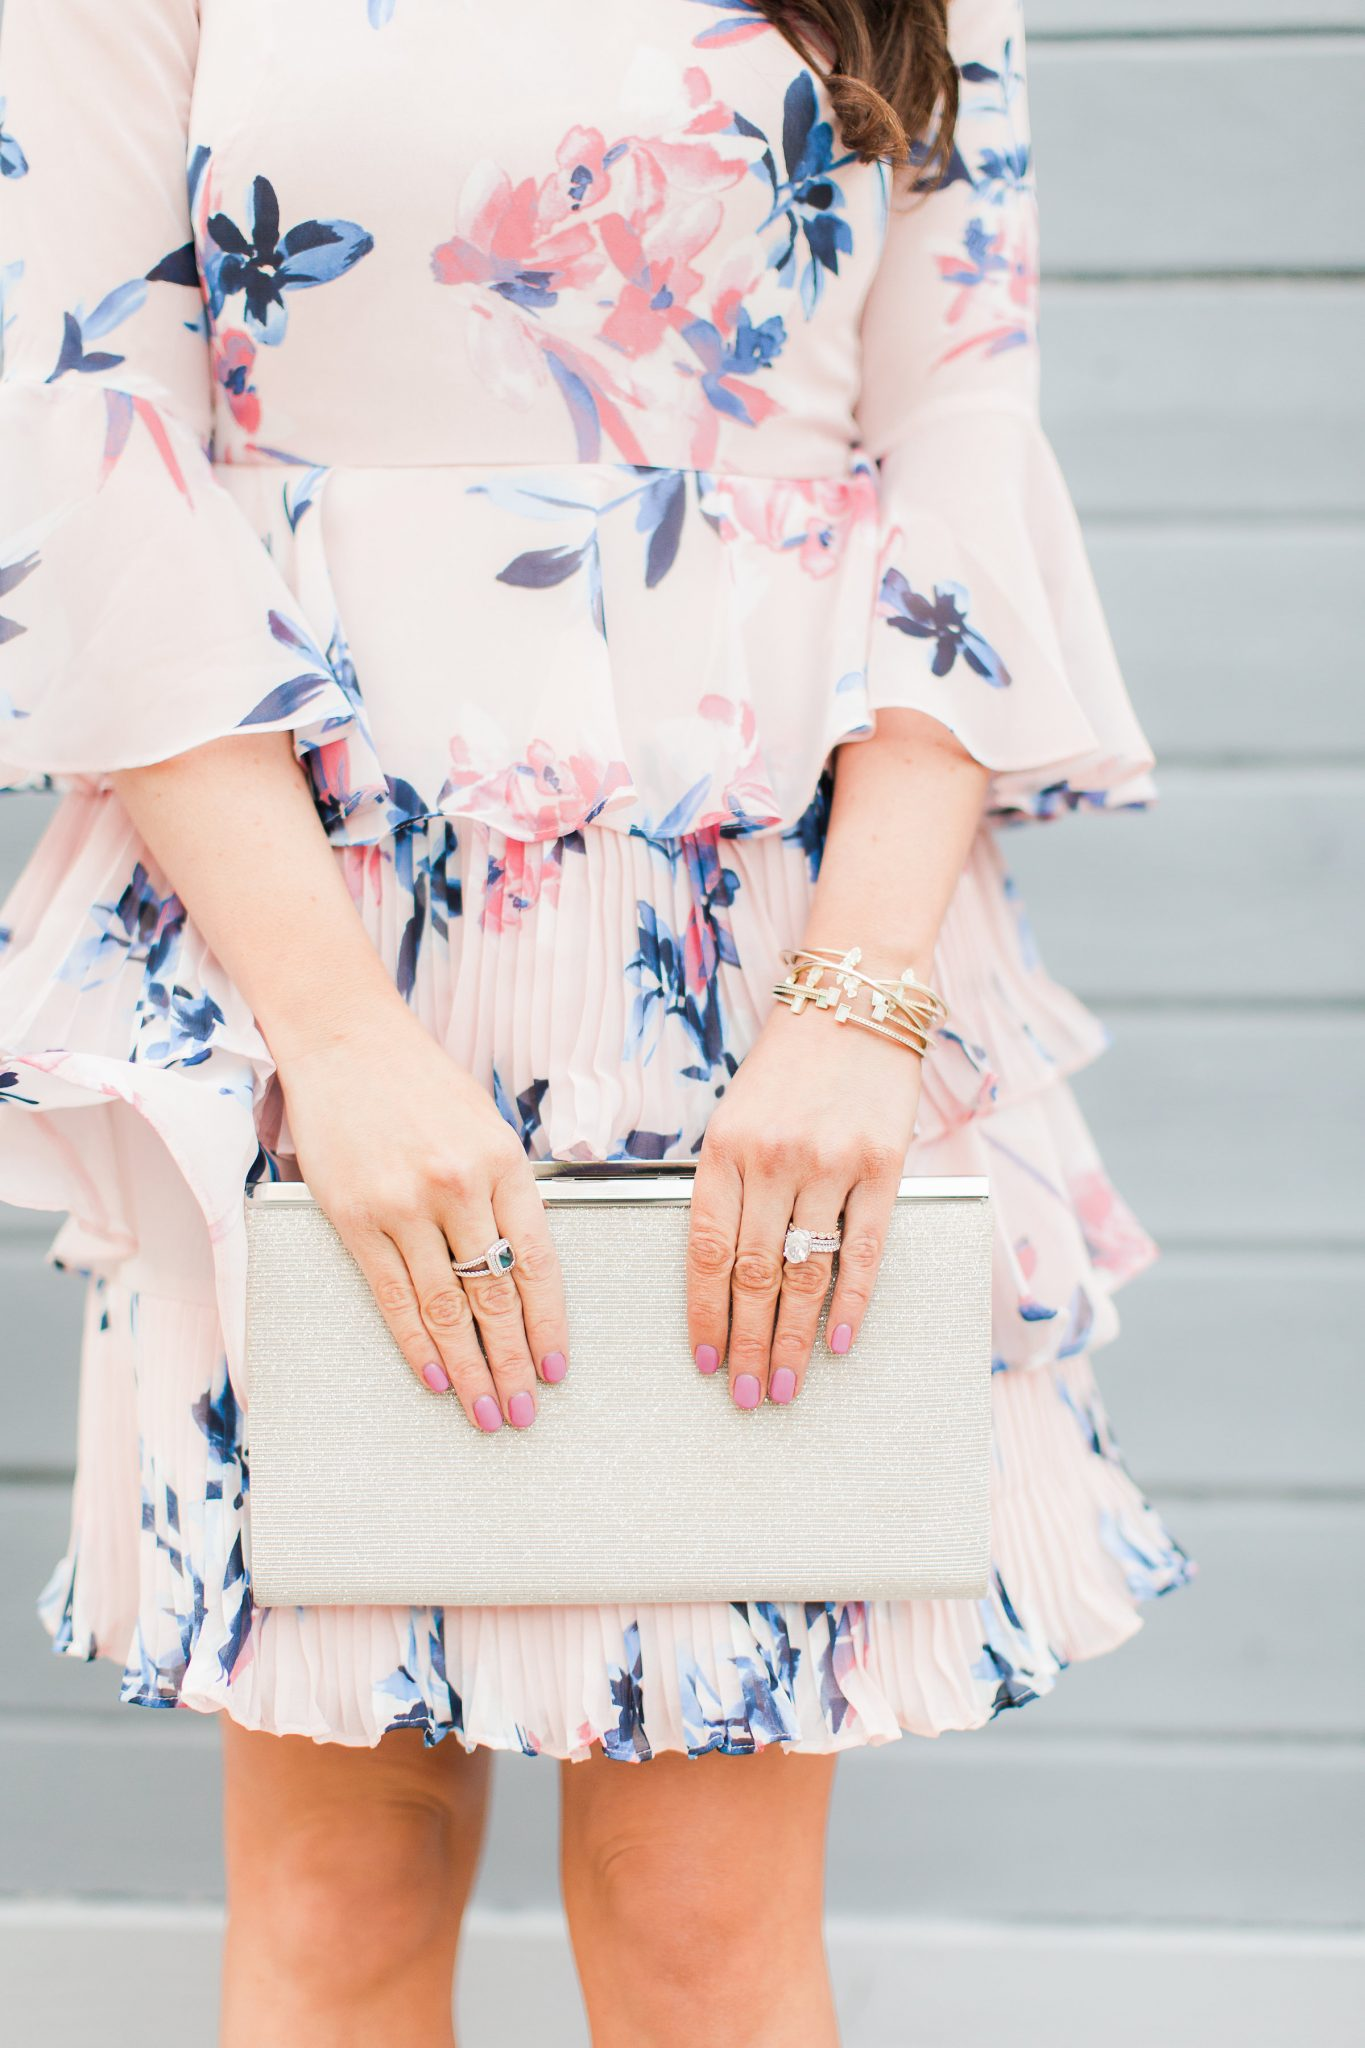 Pink floral pleated dress - My Favorite Cute Easter Dresses by popular Orange County fashion blogger Maxie Elise